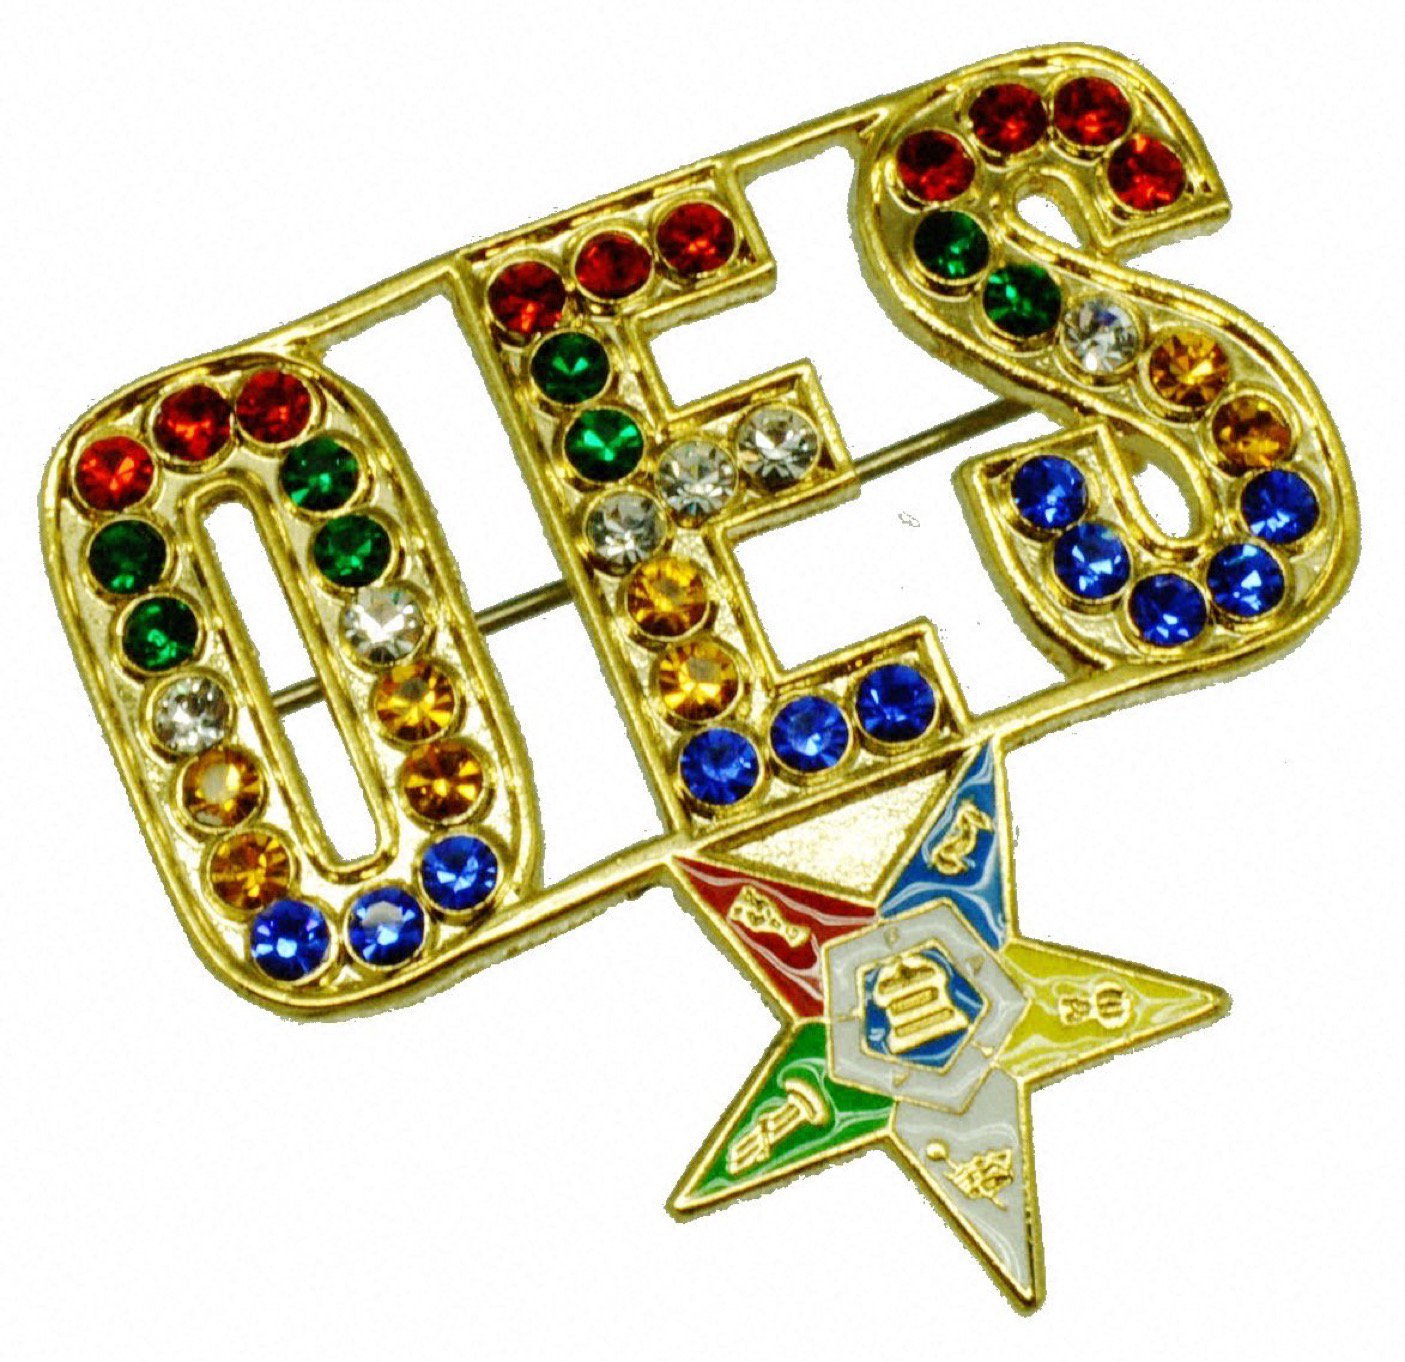 Order Eastern Star OES Jeweled Rhinestone Masonic Brooch